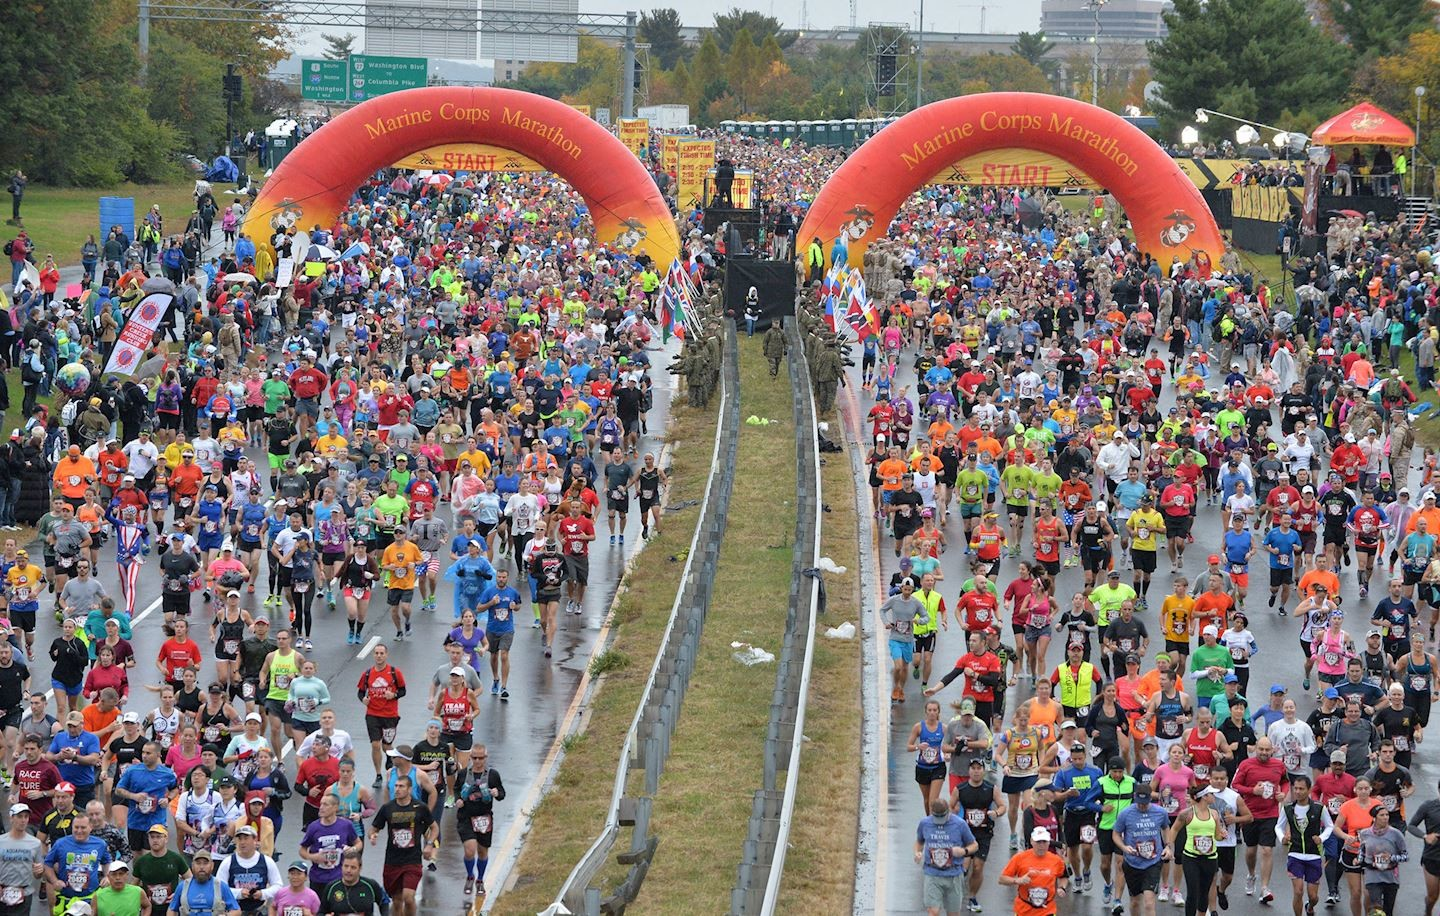 For first time in 45-year history, Marine Corps Marathon has been cancelled due to the pandemic